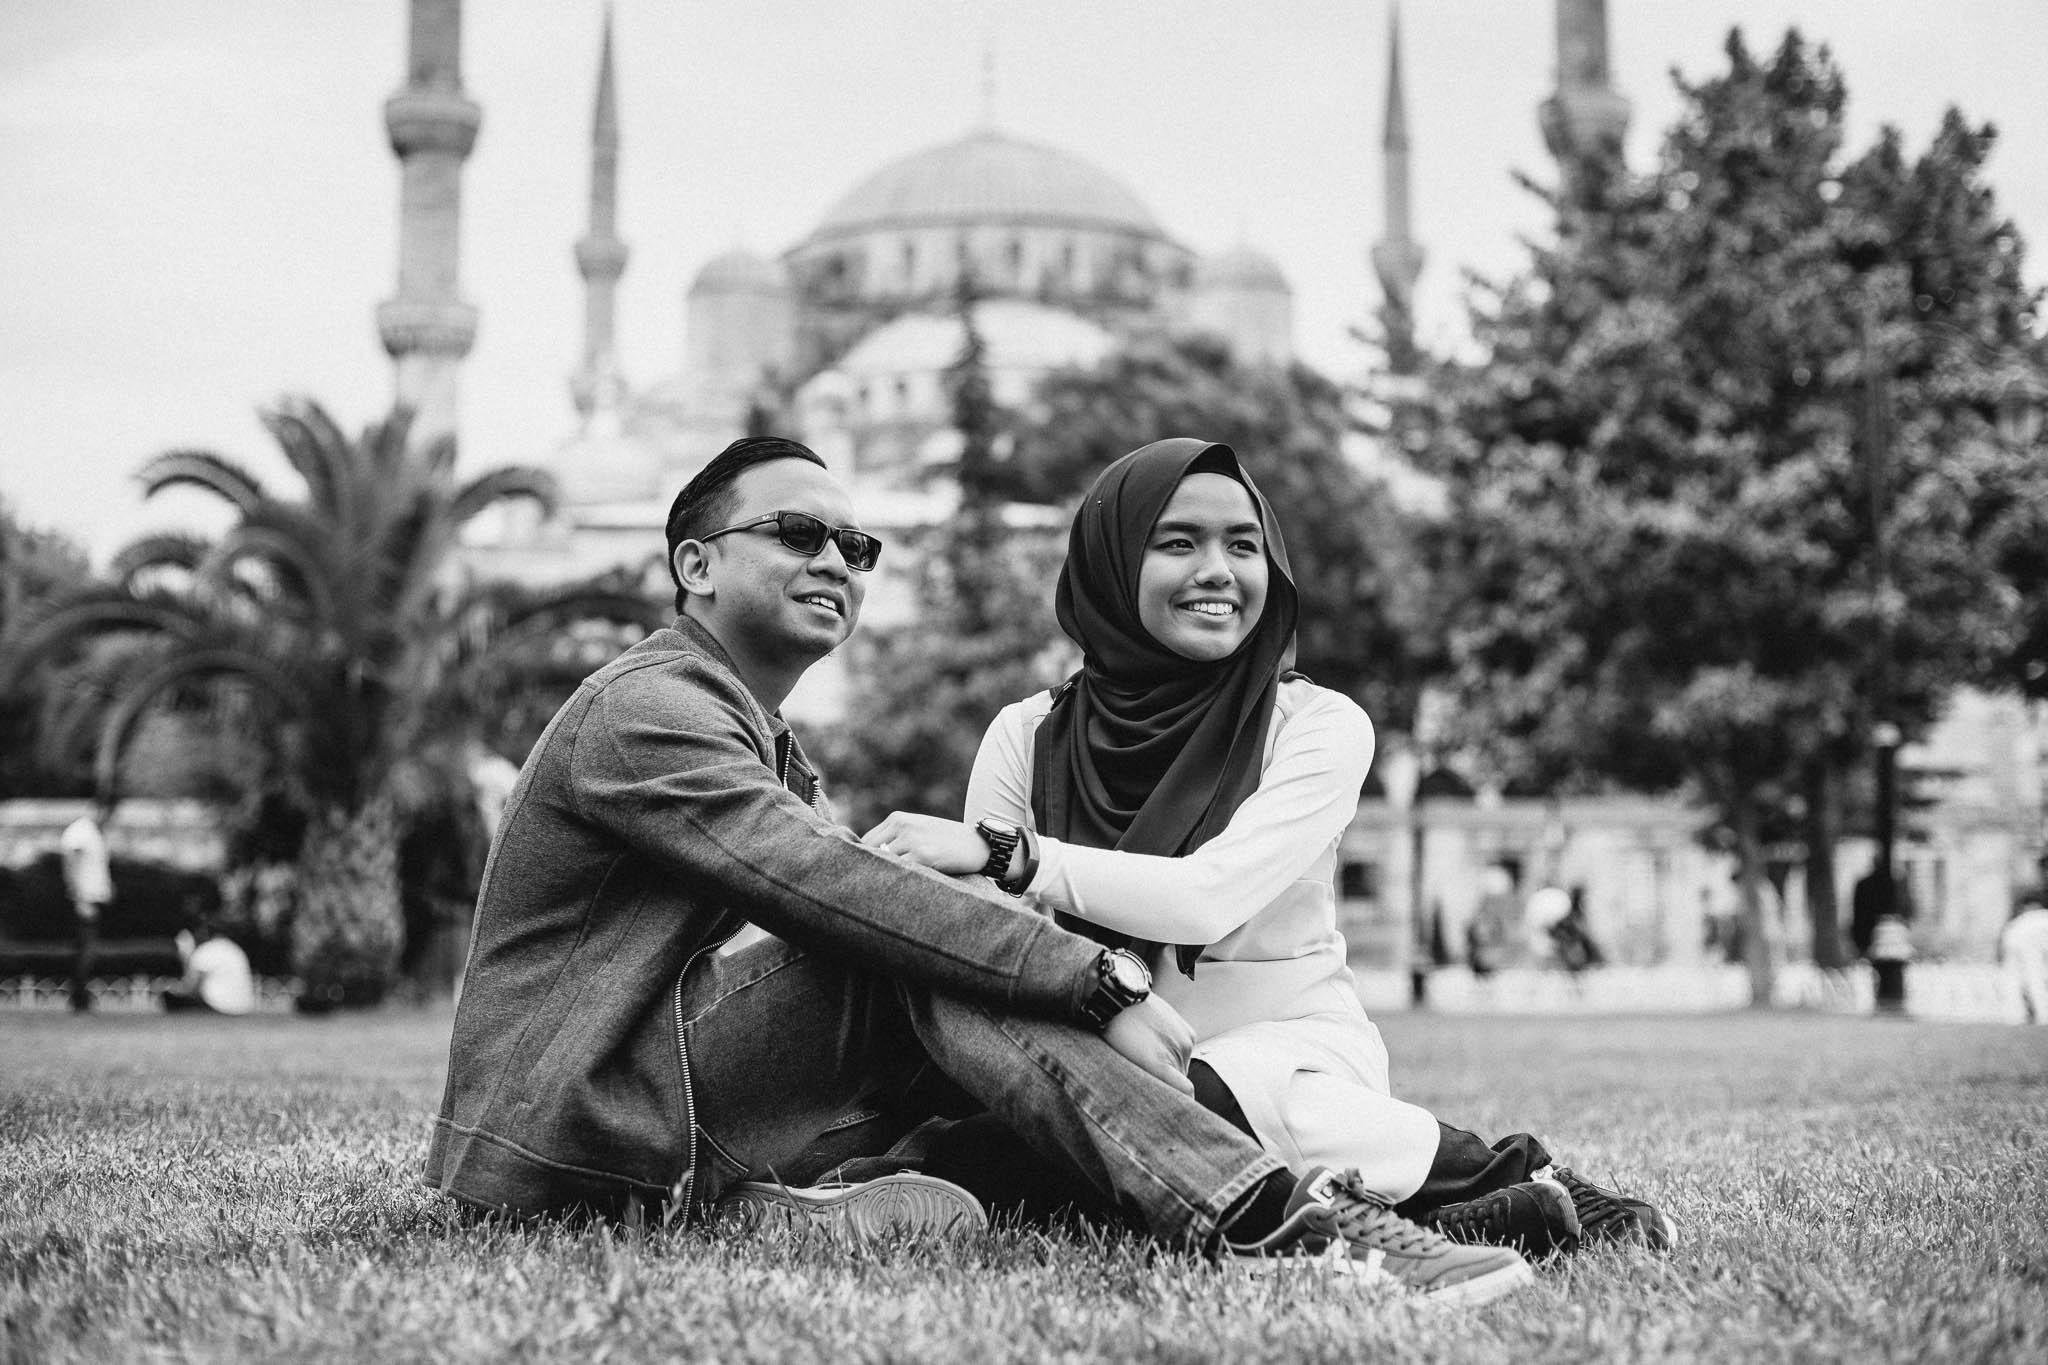 singapore-wedding-photographer-we-made-these-2016-selects-042.jpg